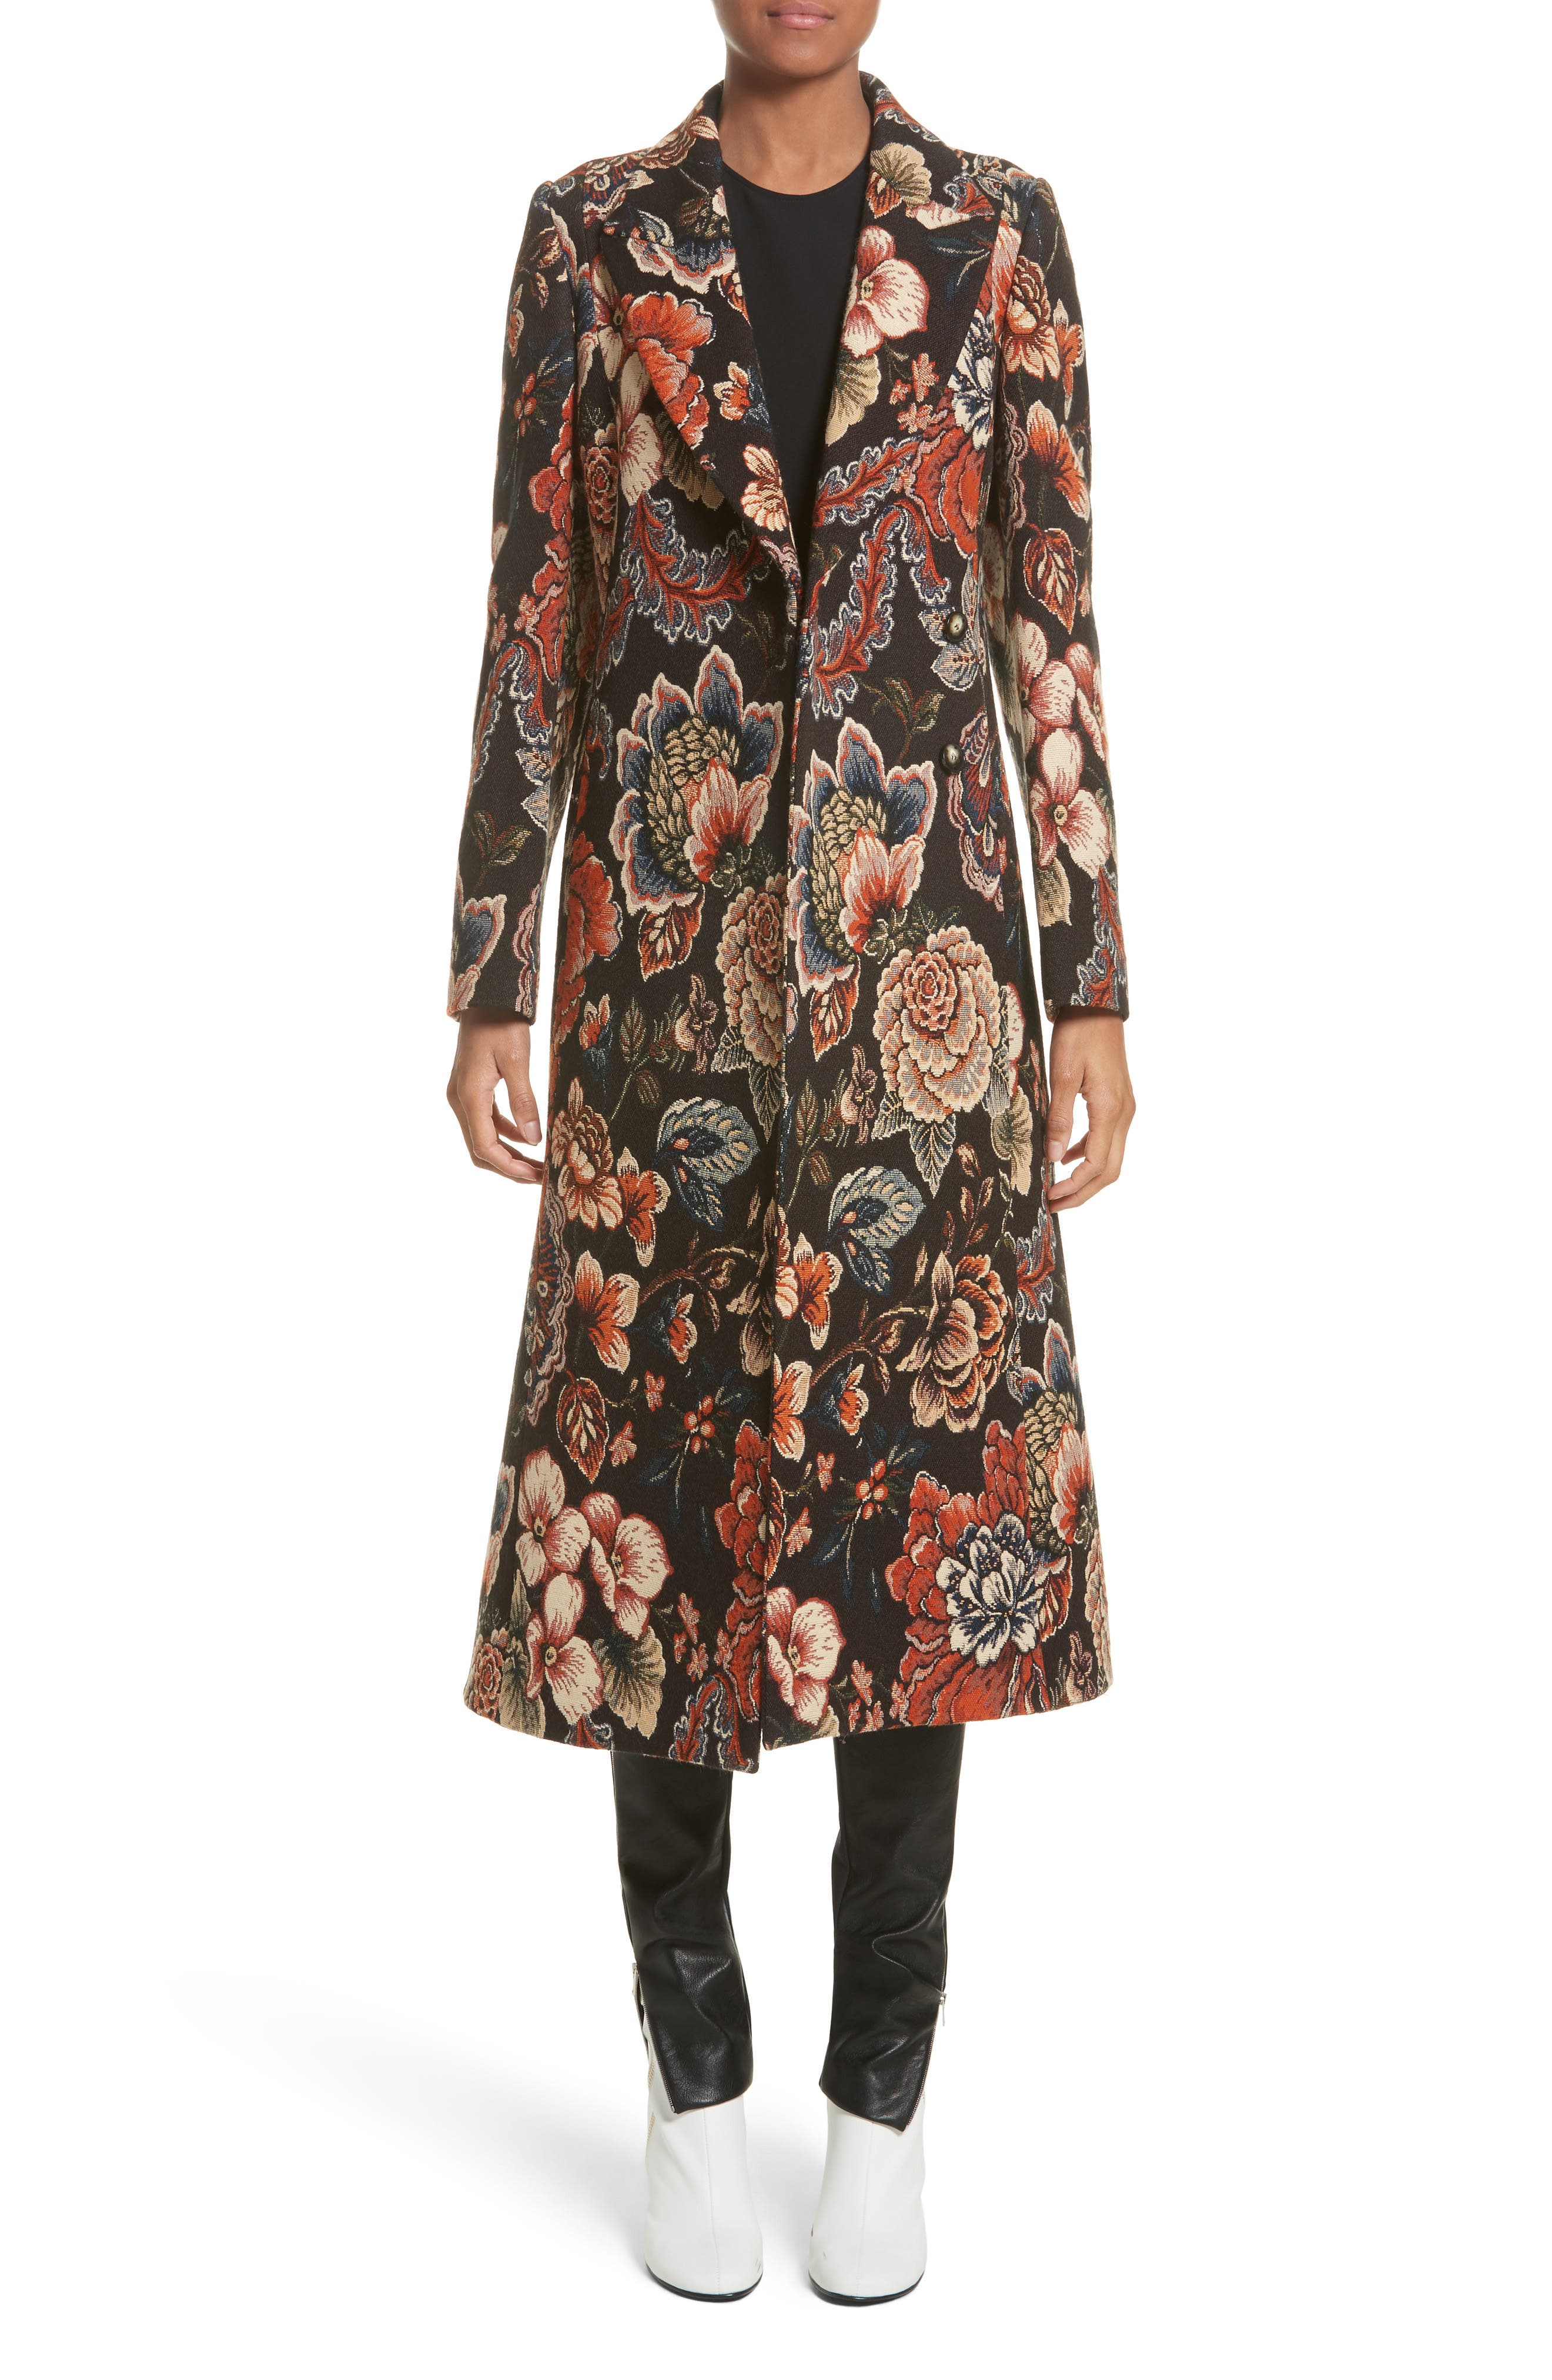 STELLA MCCARTNEY, Floral Tapestry Long Coat, Main thumbnail 1, color, 960